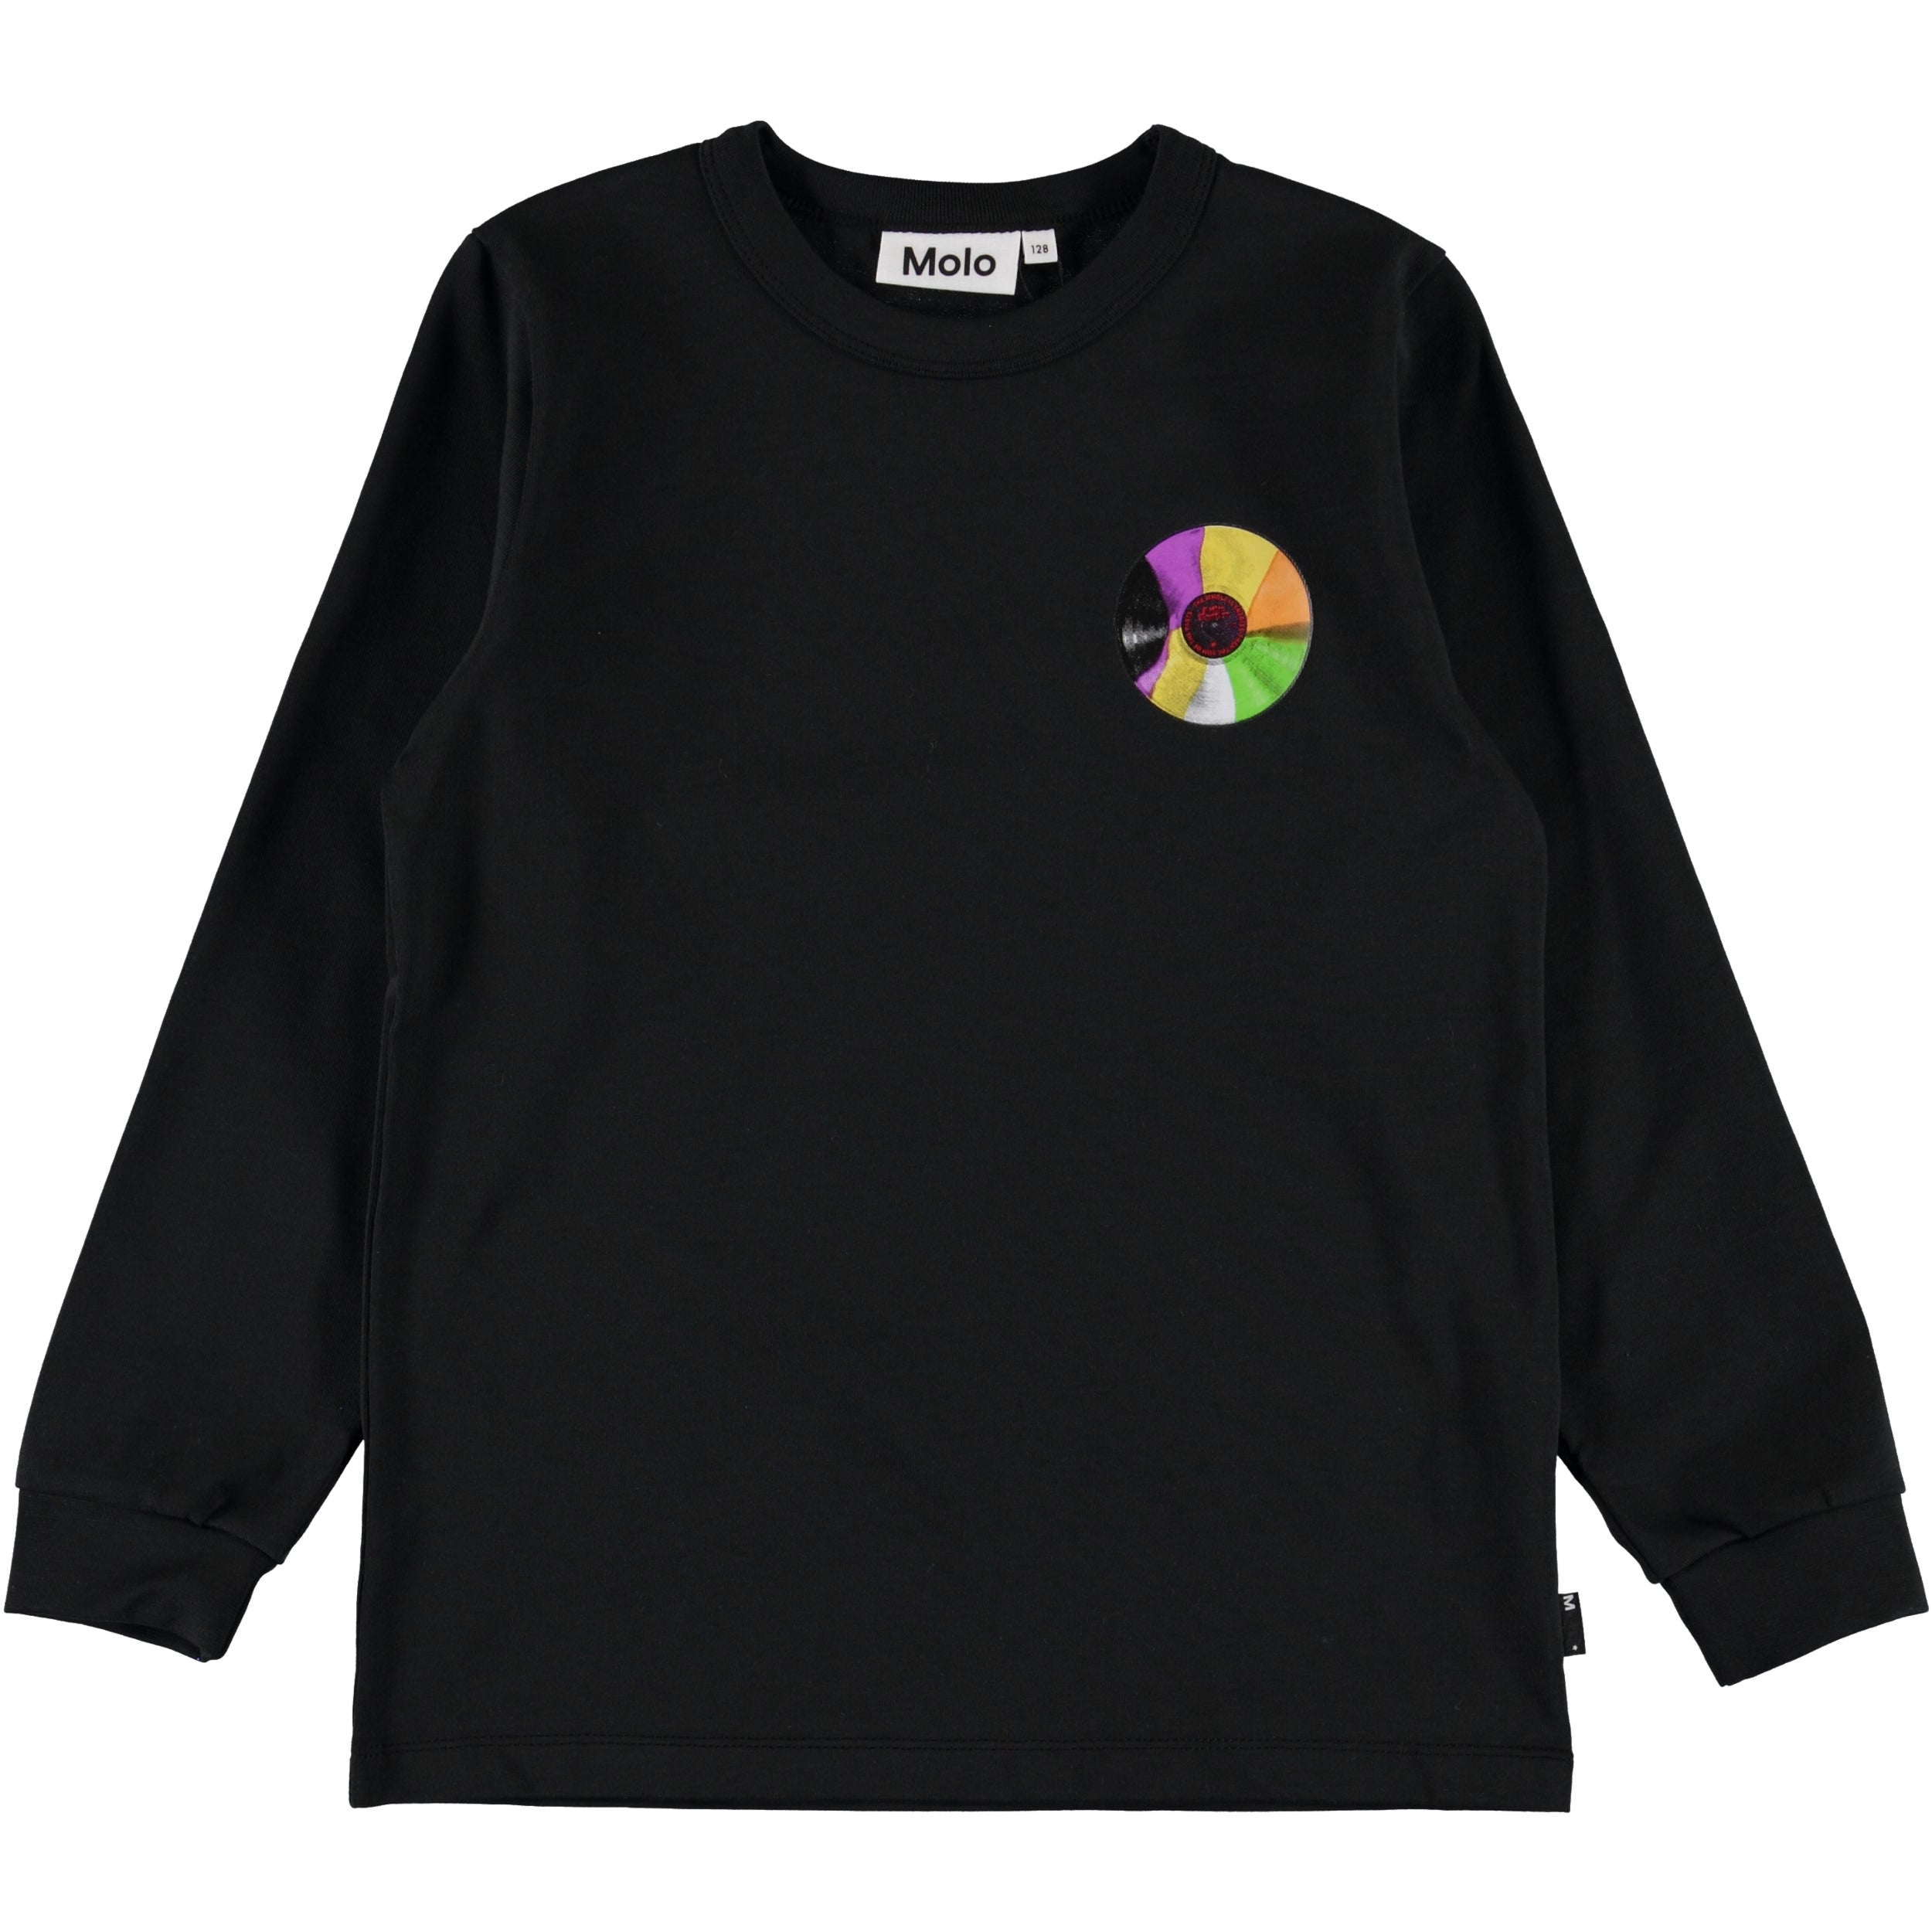 Molo Rez Long Sleeved Tee - Mini Record